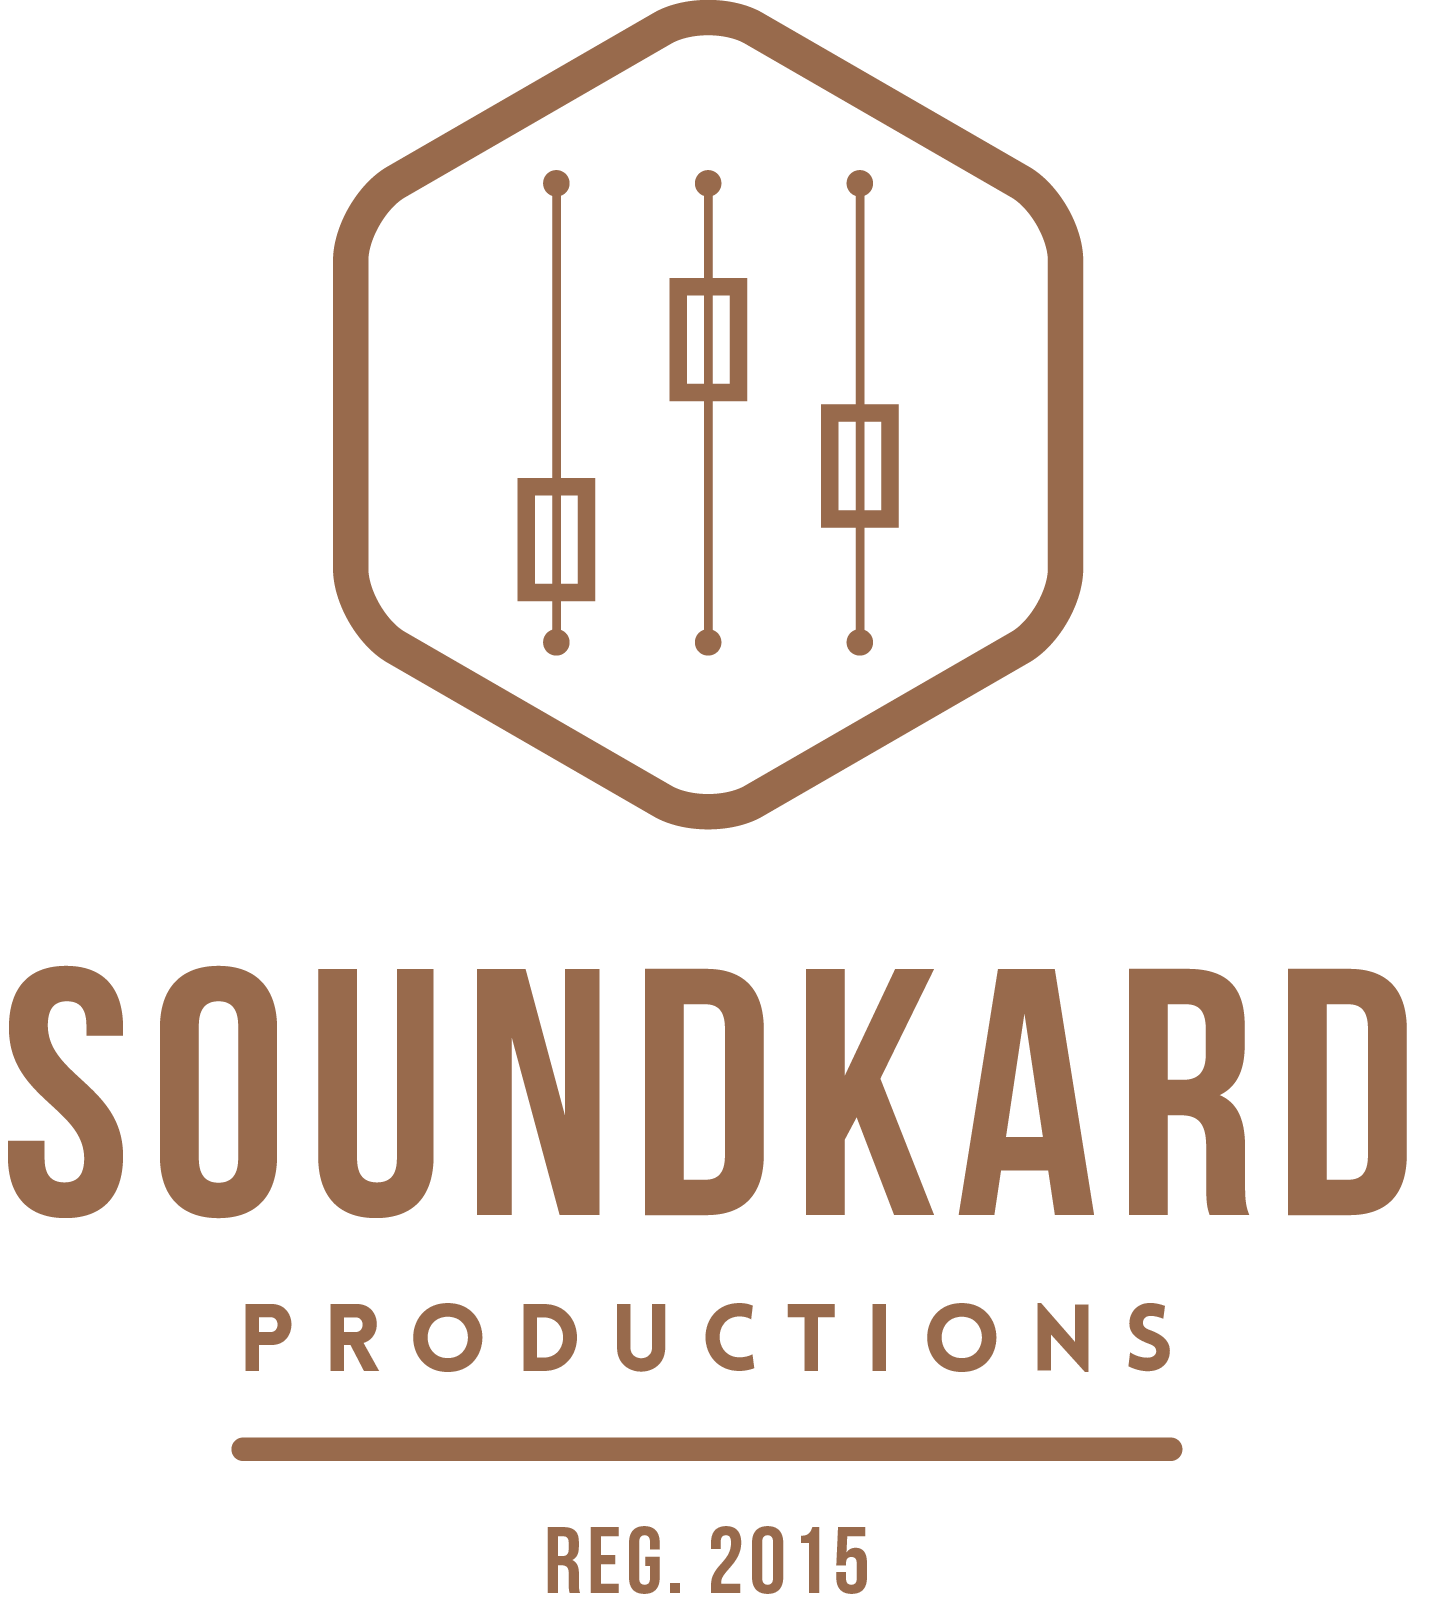 Soundkard Productions